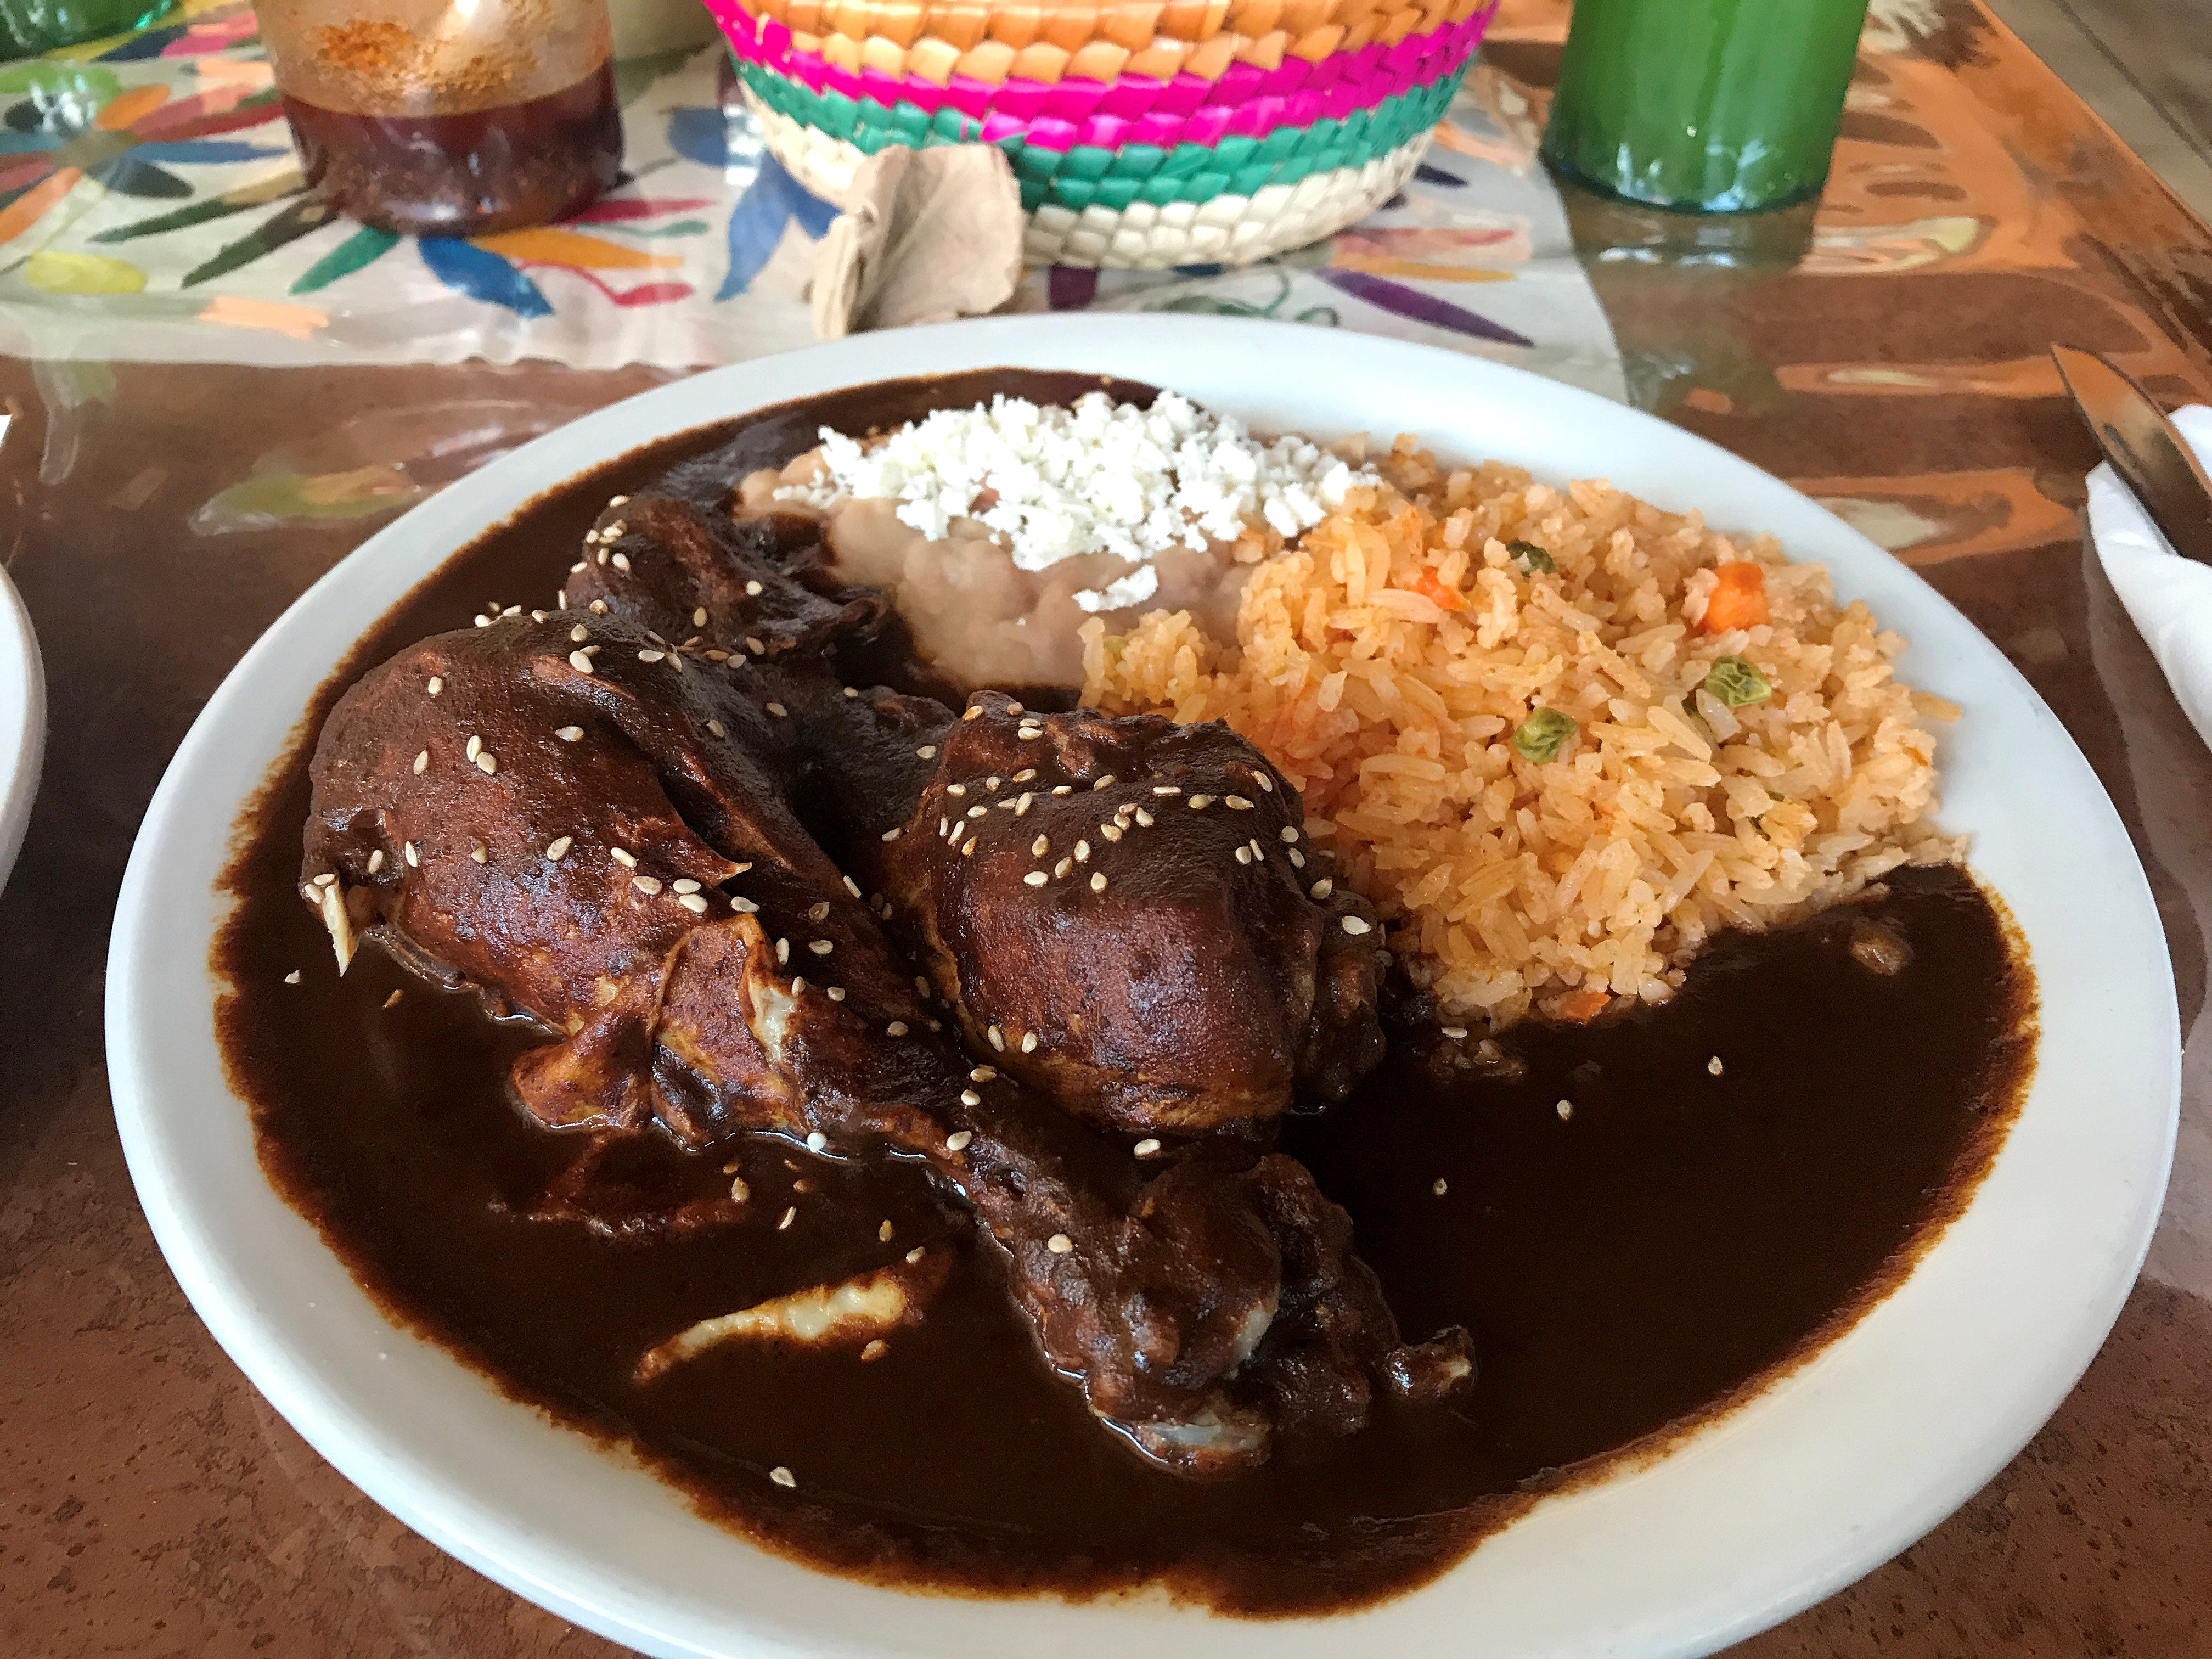 Chefs at Culturas Hidalgo y Oaxaca restaurant used a family recipe to make this homemade style earthy and bittersweet chicken mole Oct. 25, 2018. They also offer pascal, a green mole dish.